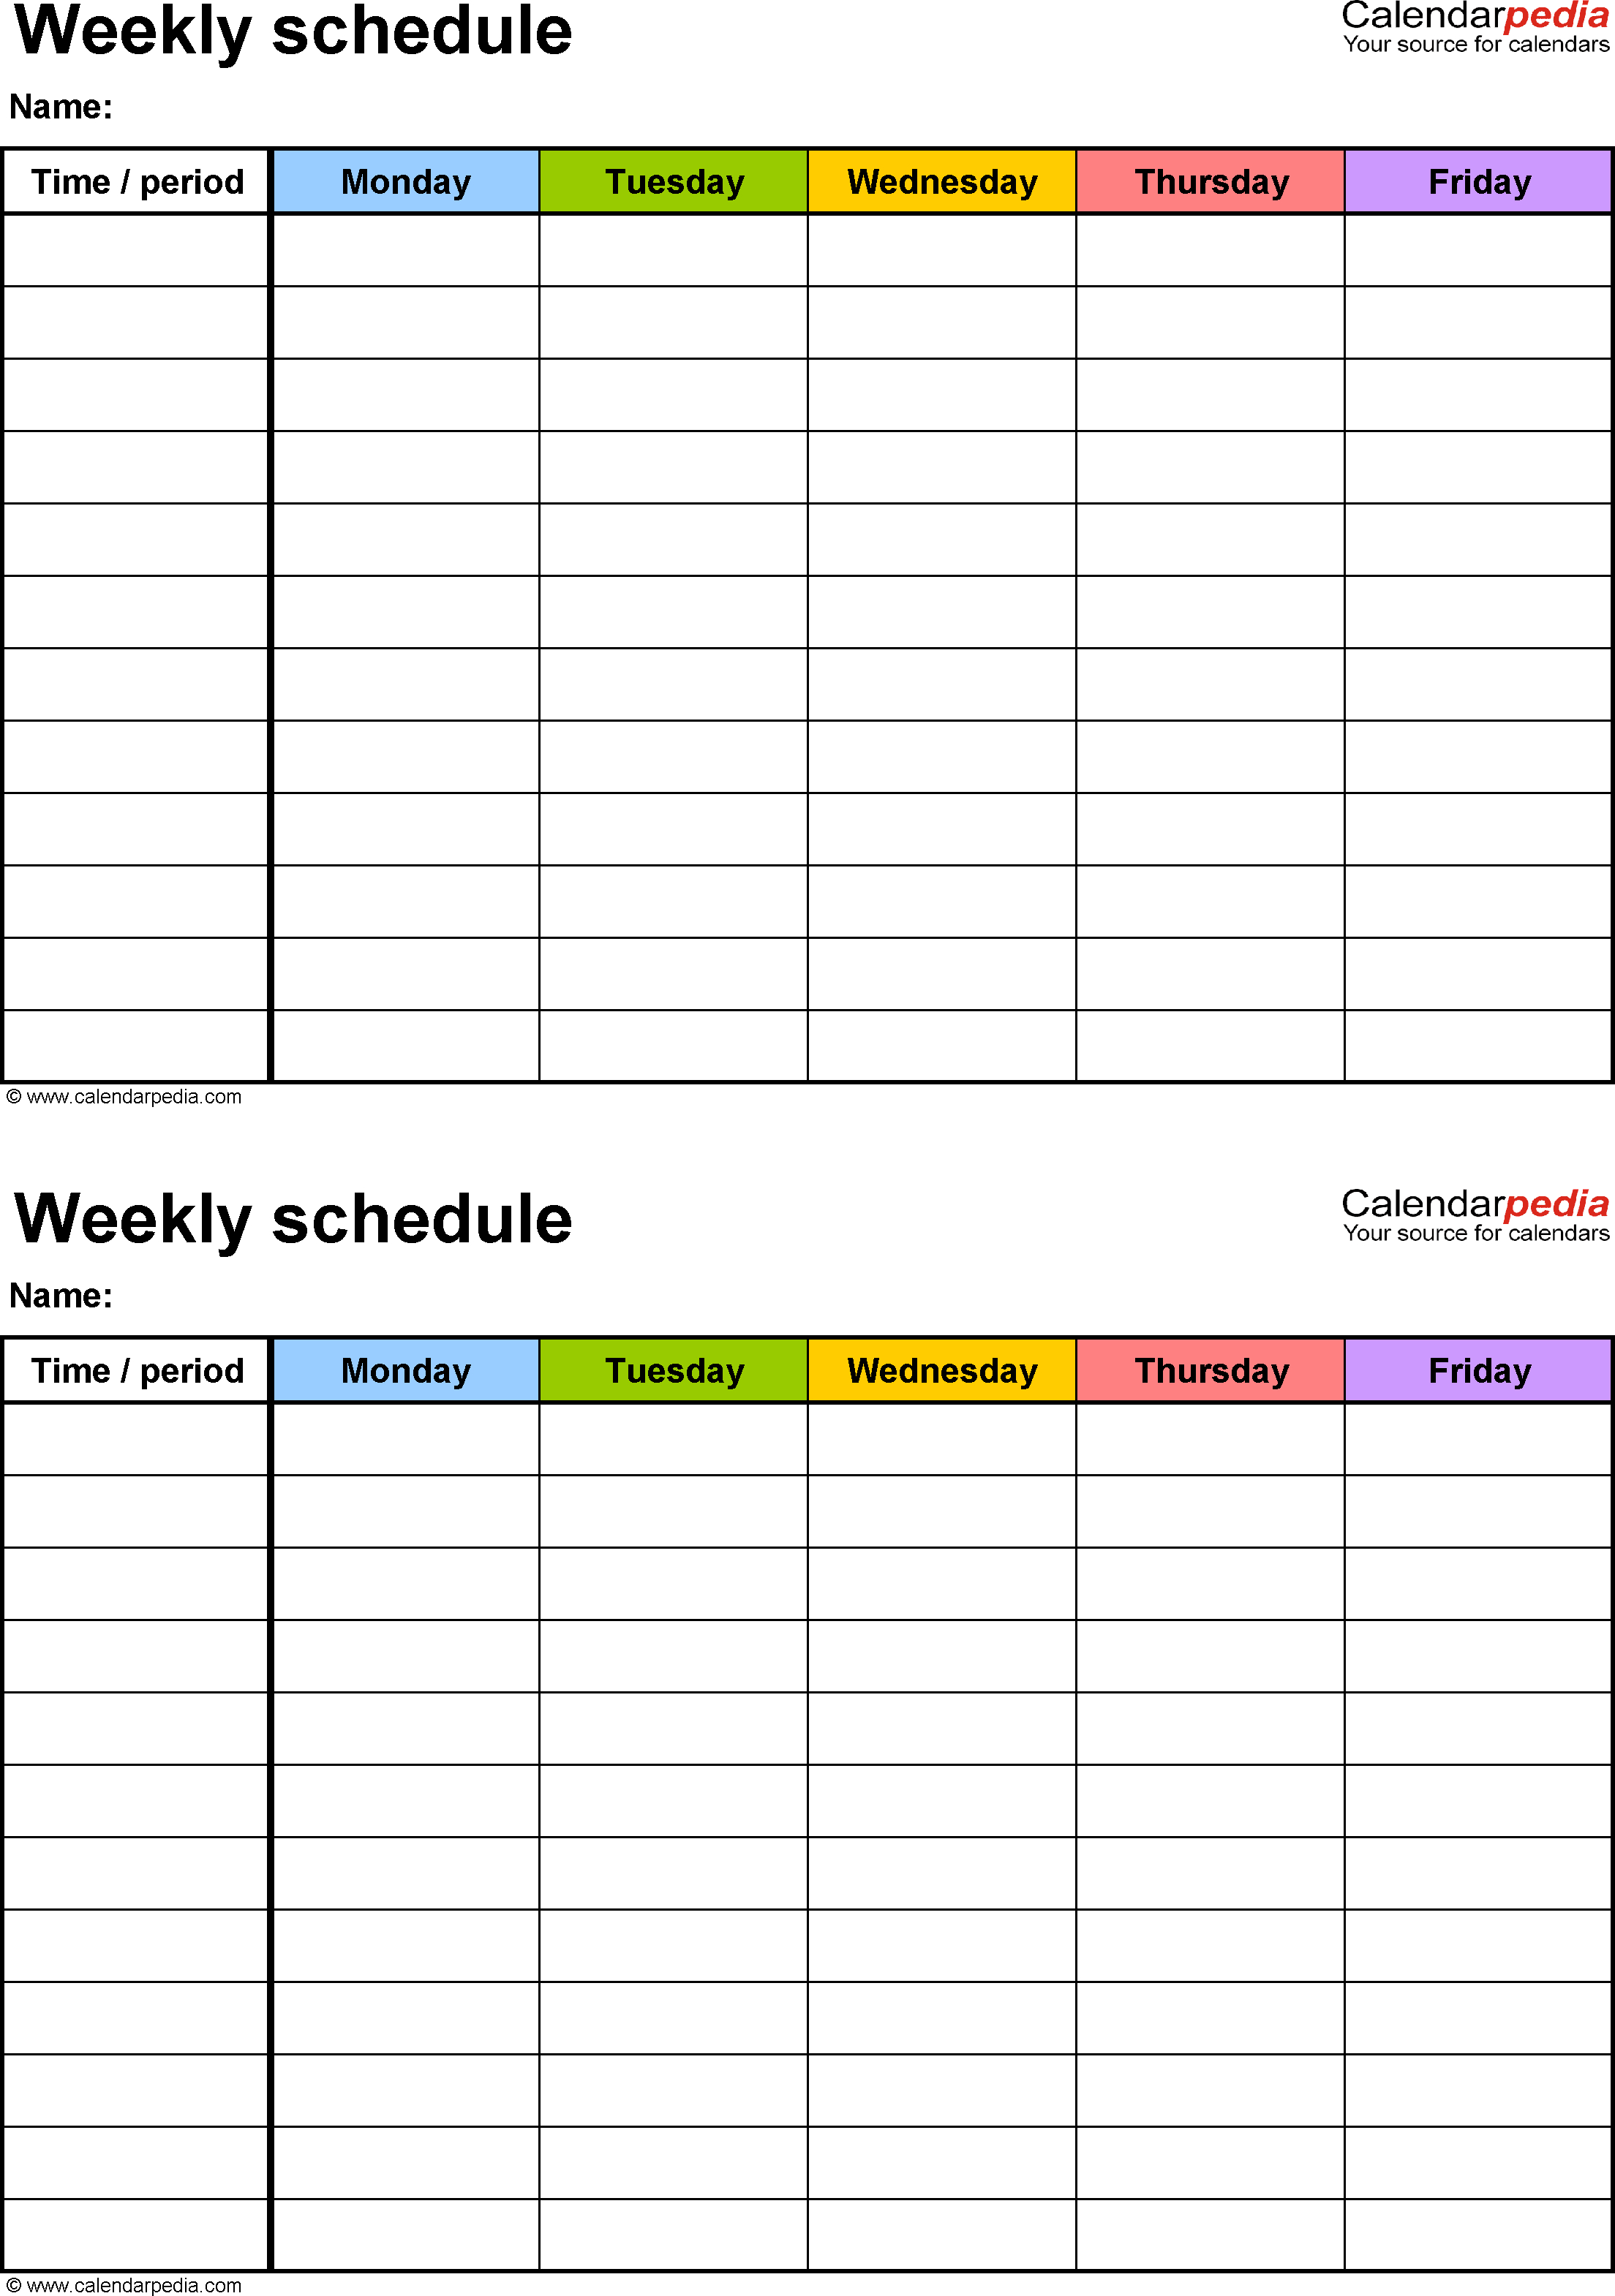 Free Weekly Schedule Templates For Word  18 Templates throughout 7 Day Weekly Calendar Template